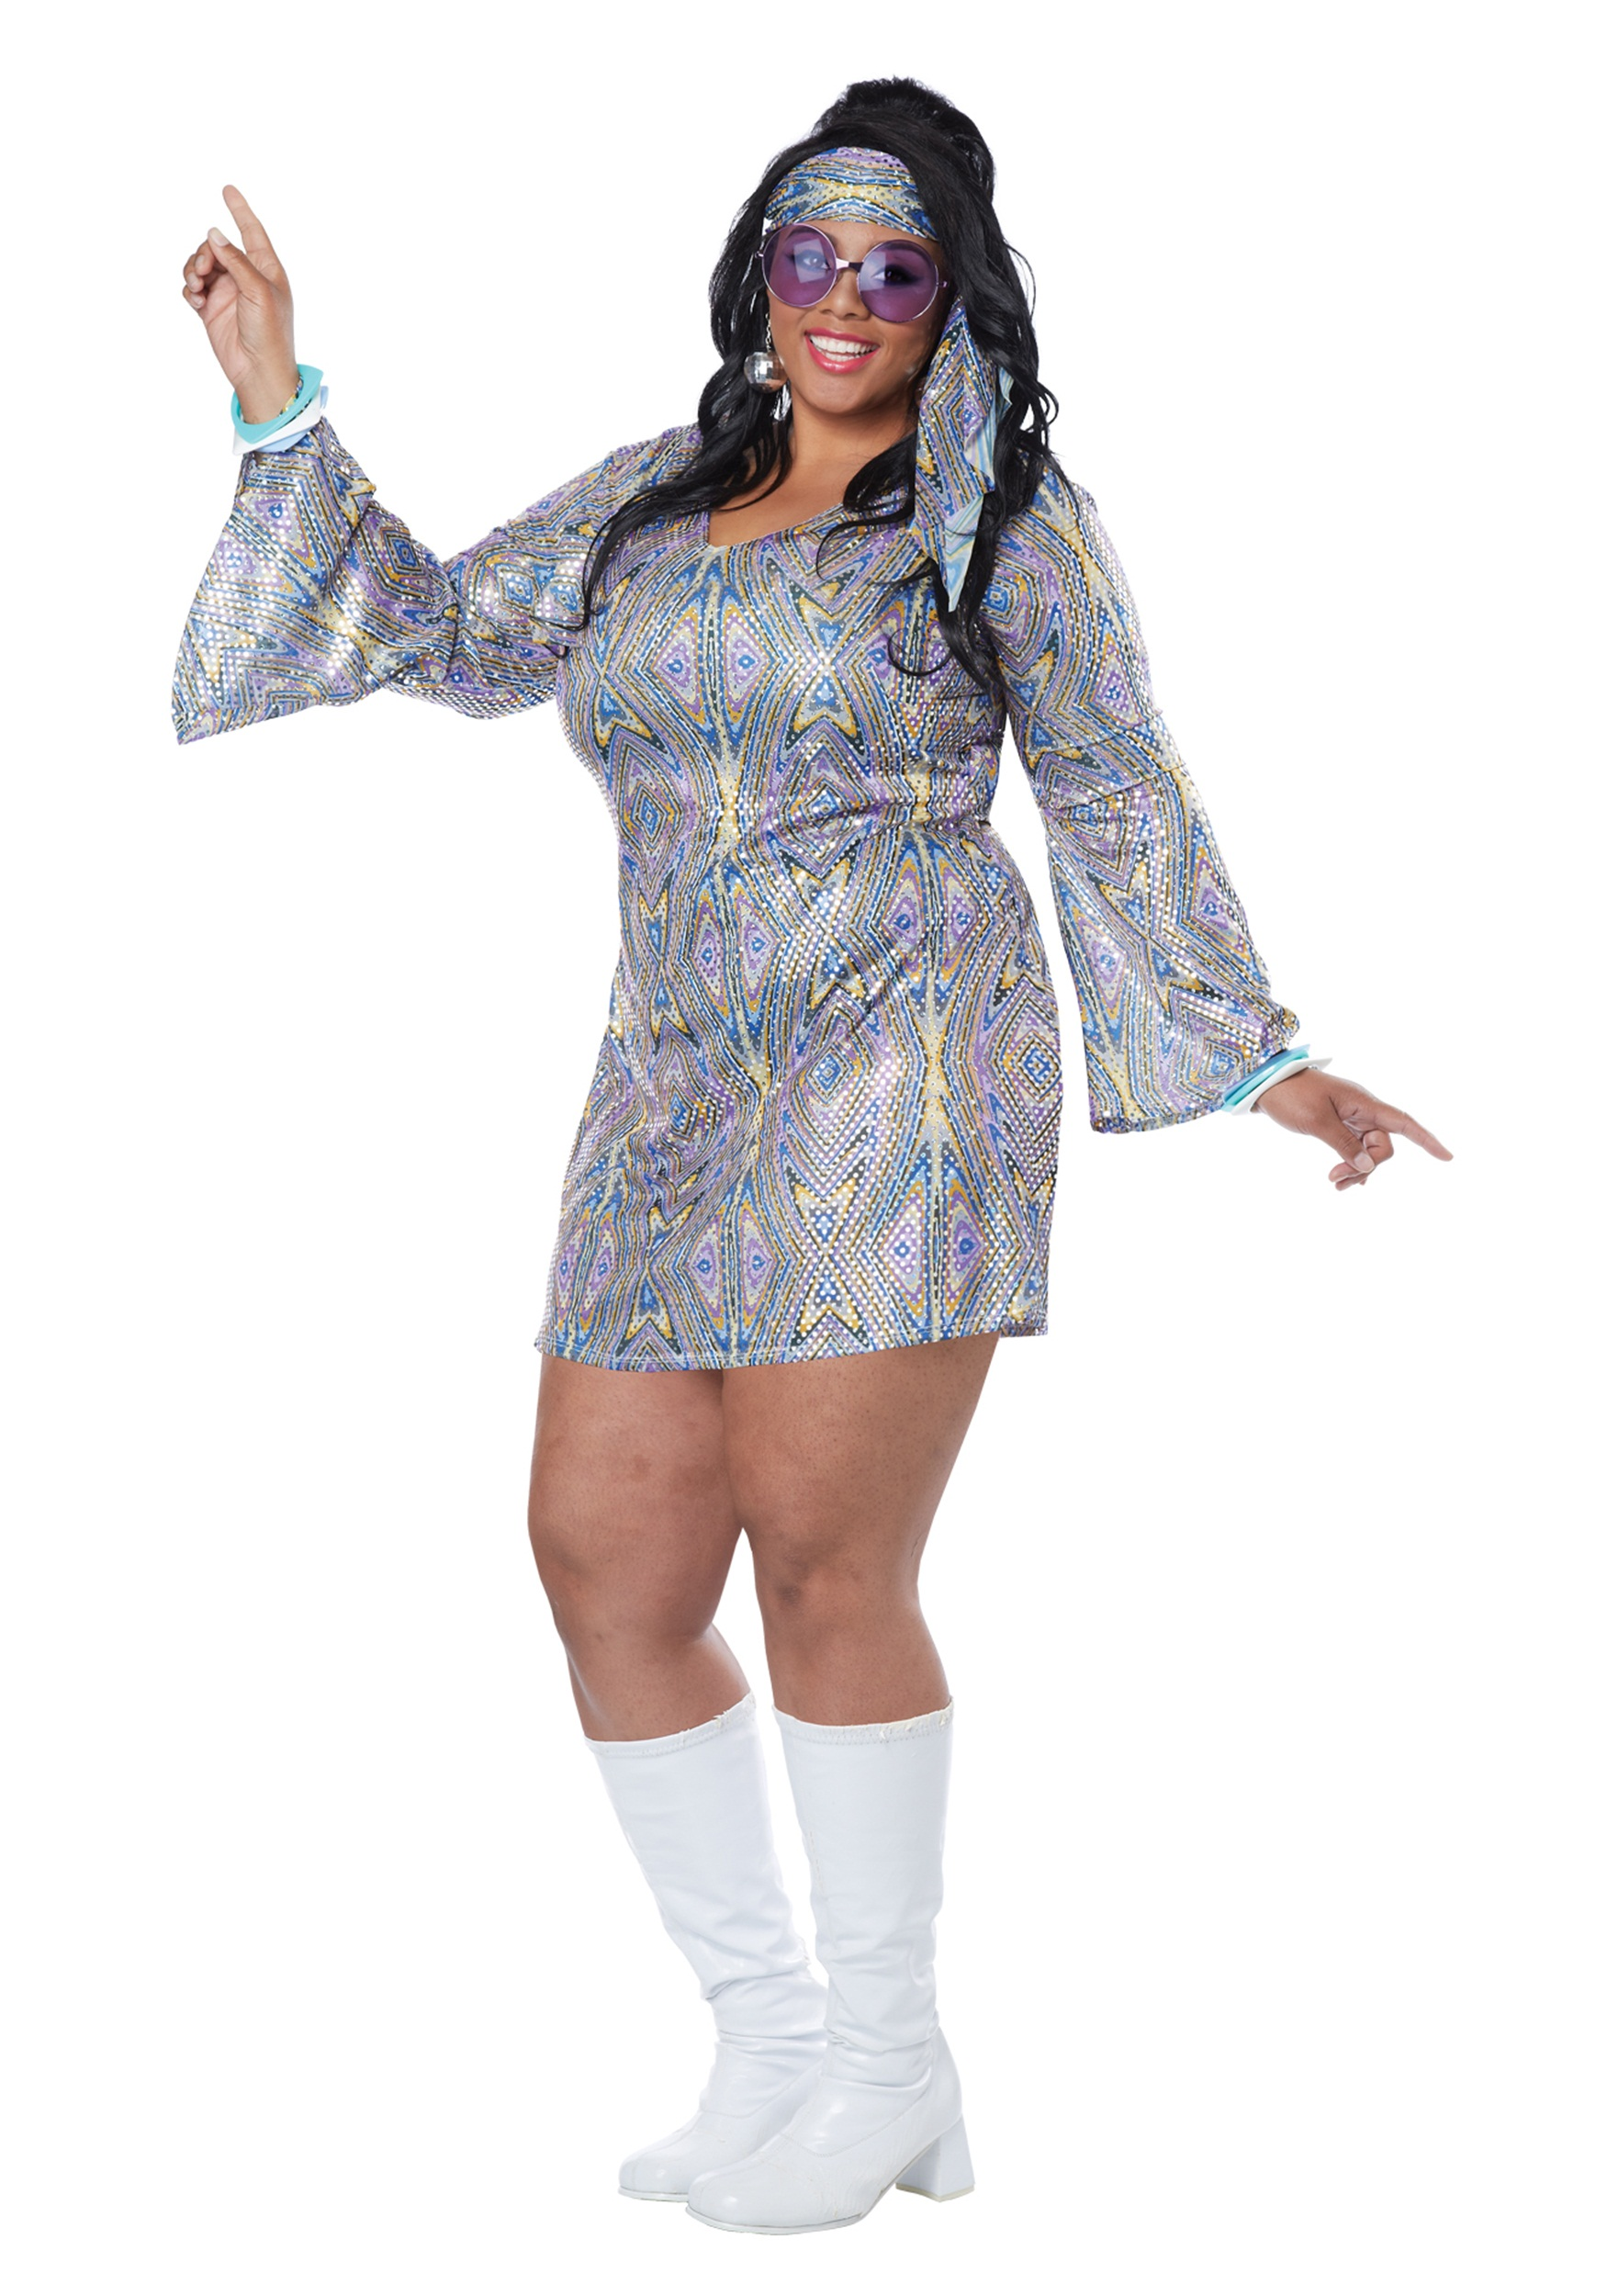 6e698383c0 Disco Halloween Costumes   Image Is Loading Groovy-70-039-s-Disco ...